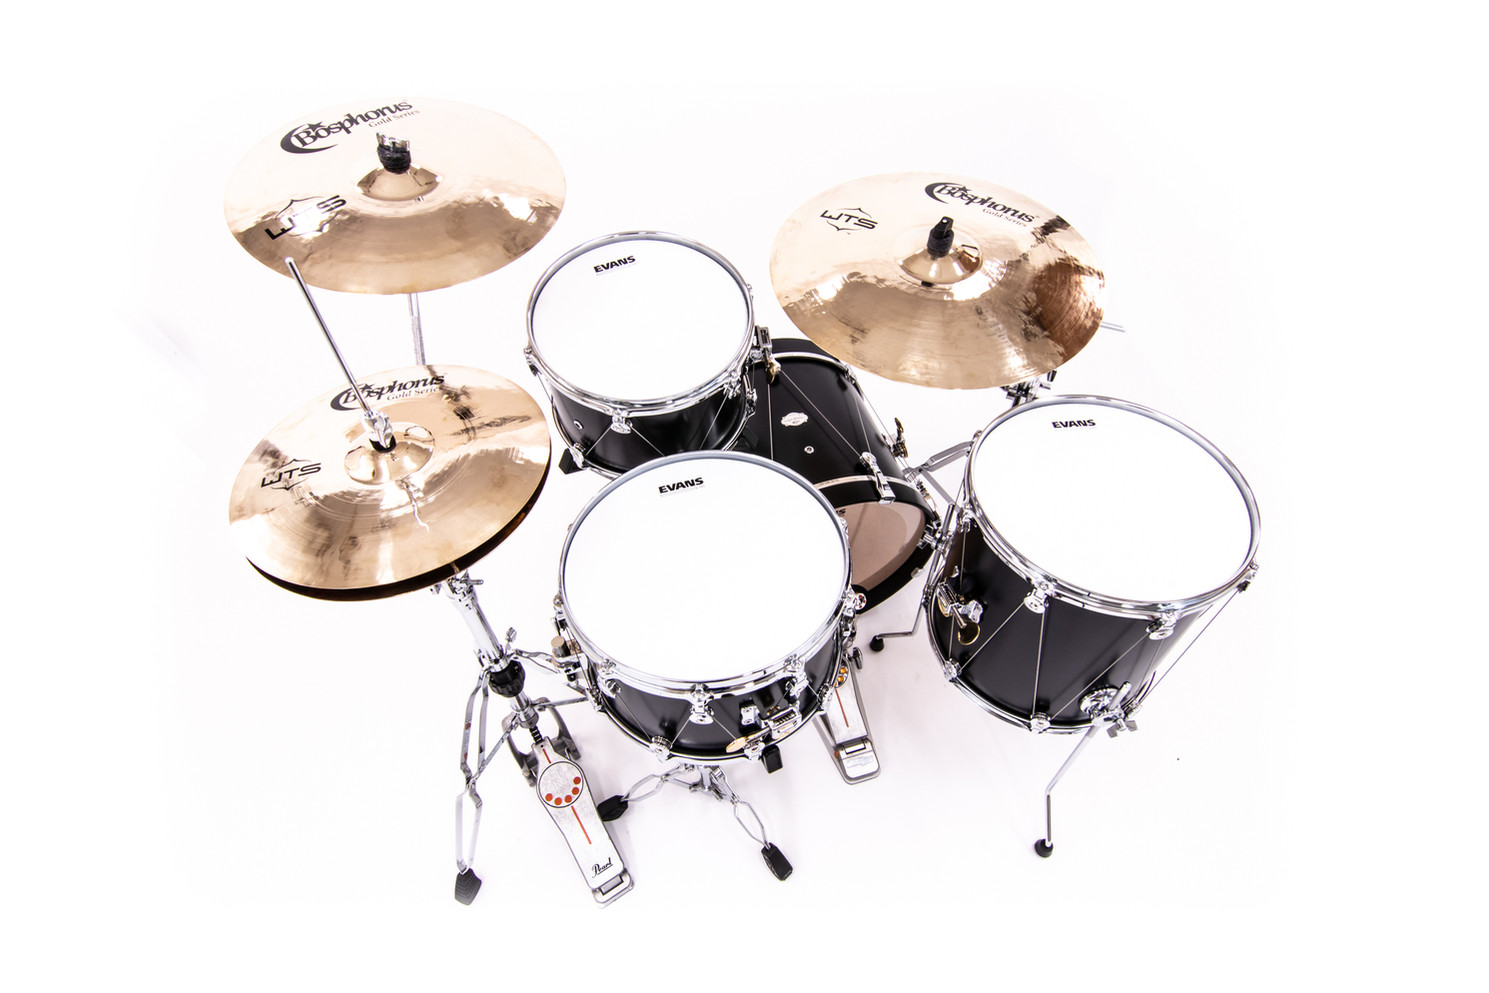 Bosphorus Cymbals paired with the WTS Artistry Series shell pack and snare drum